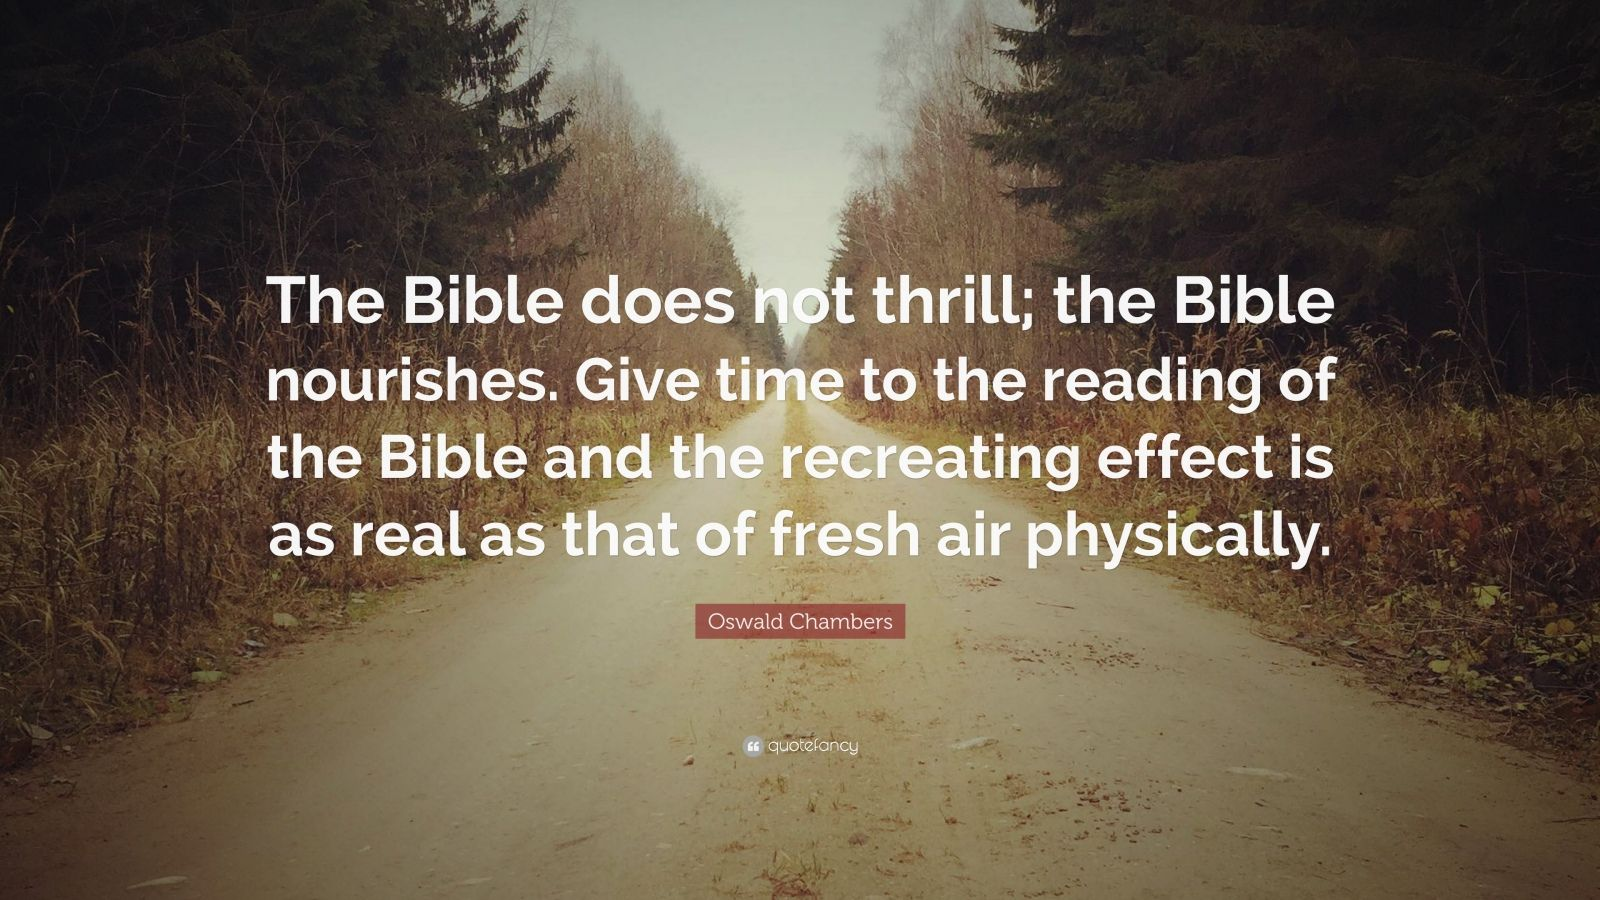 """Oswald Chambers Quote: """"The Bible does not thrill; the Bible nourishes. Give time to the reading of the Bible and the recreating effect is as real as that of fresh air physically."""""""